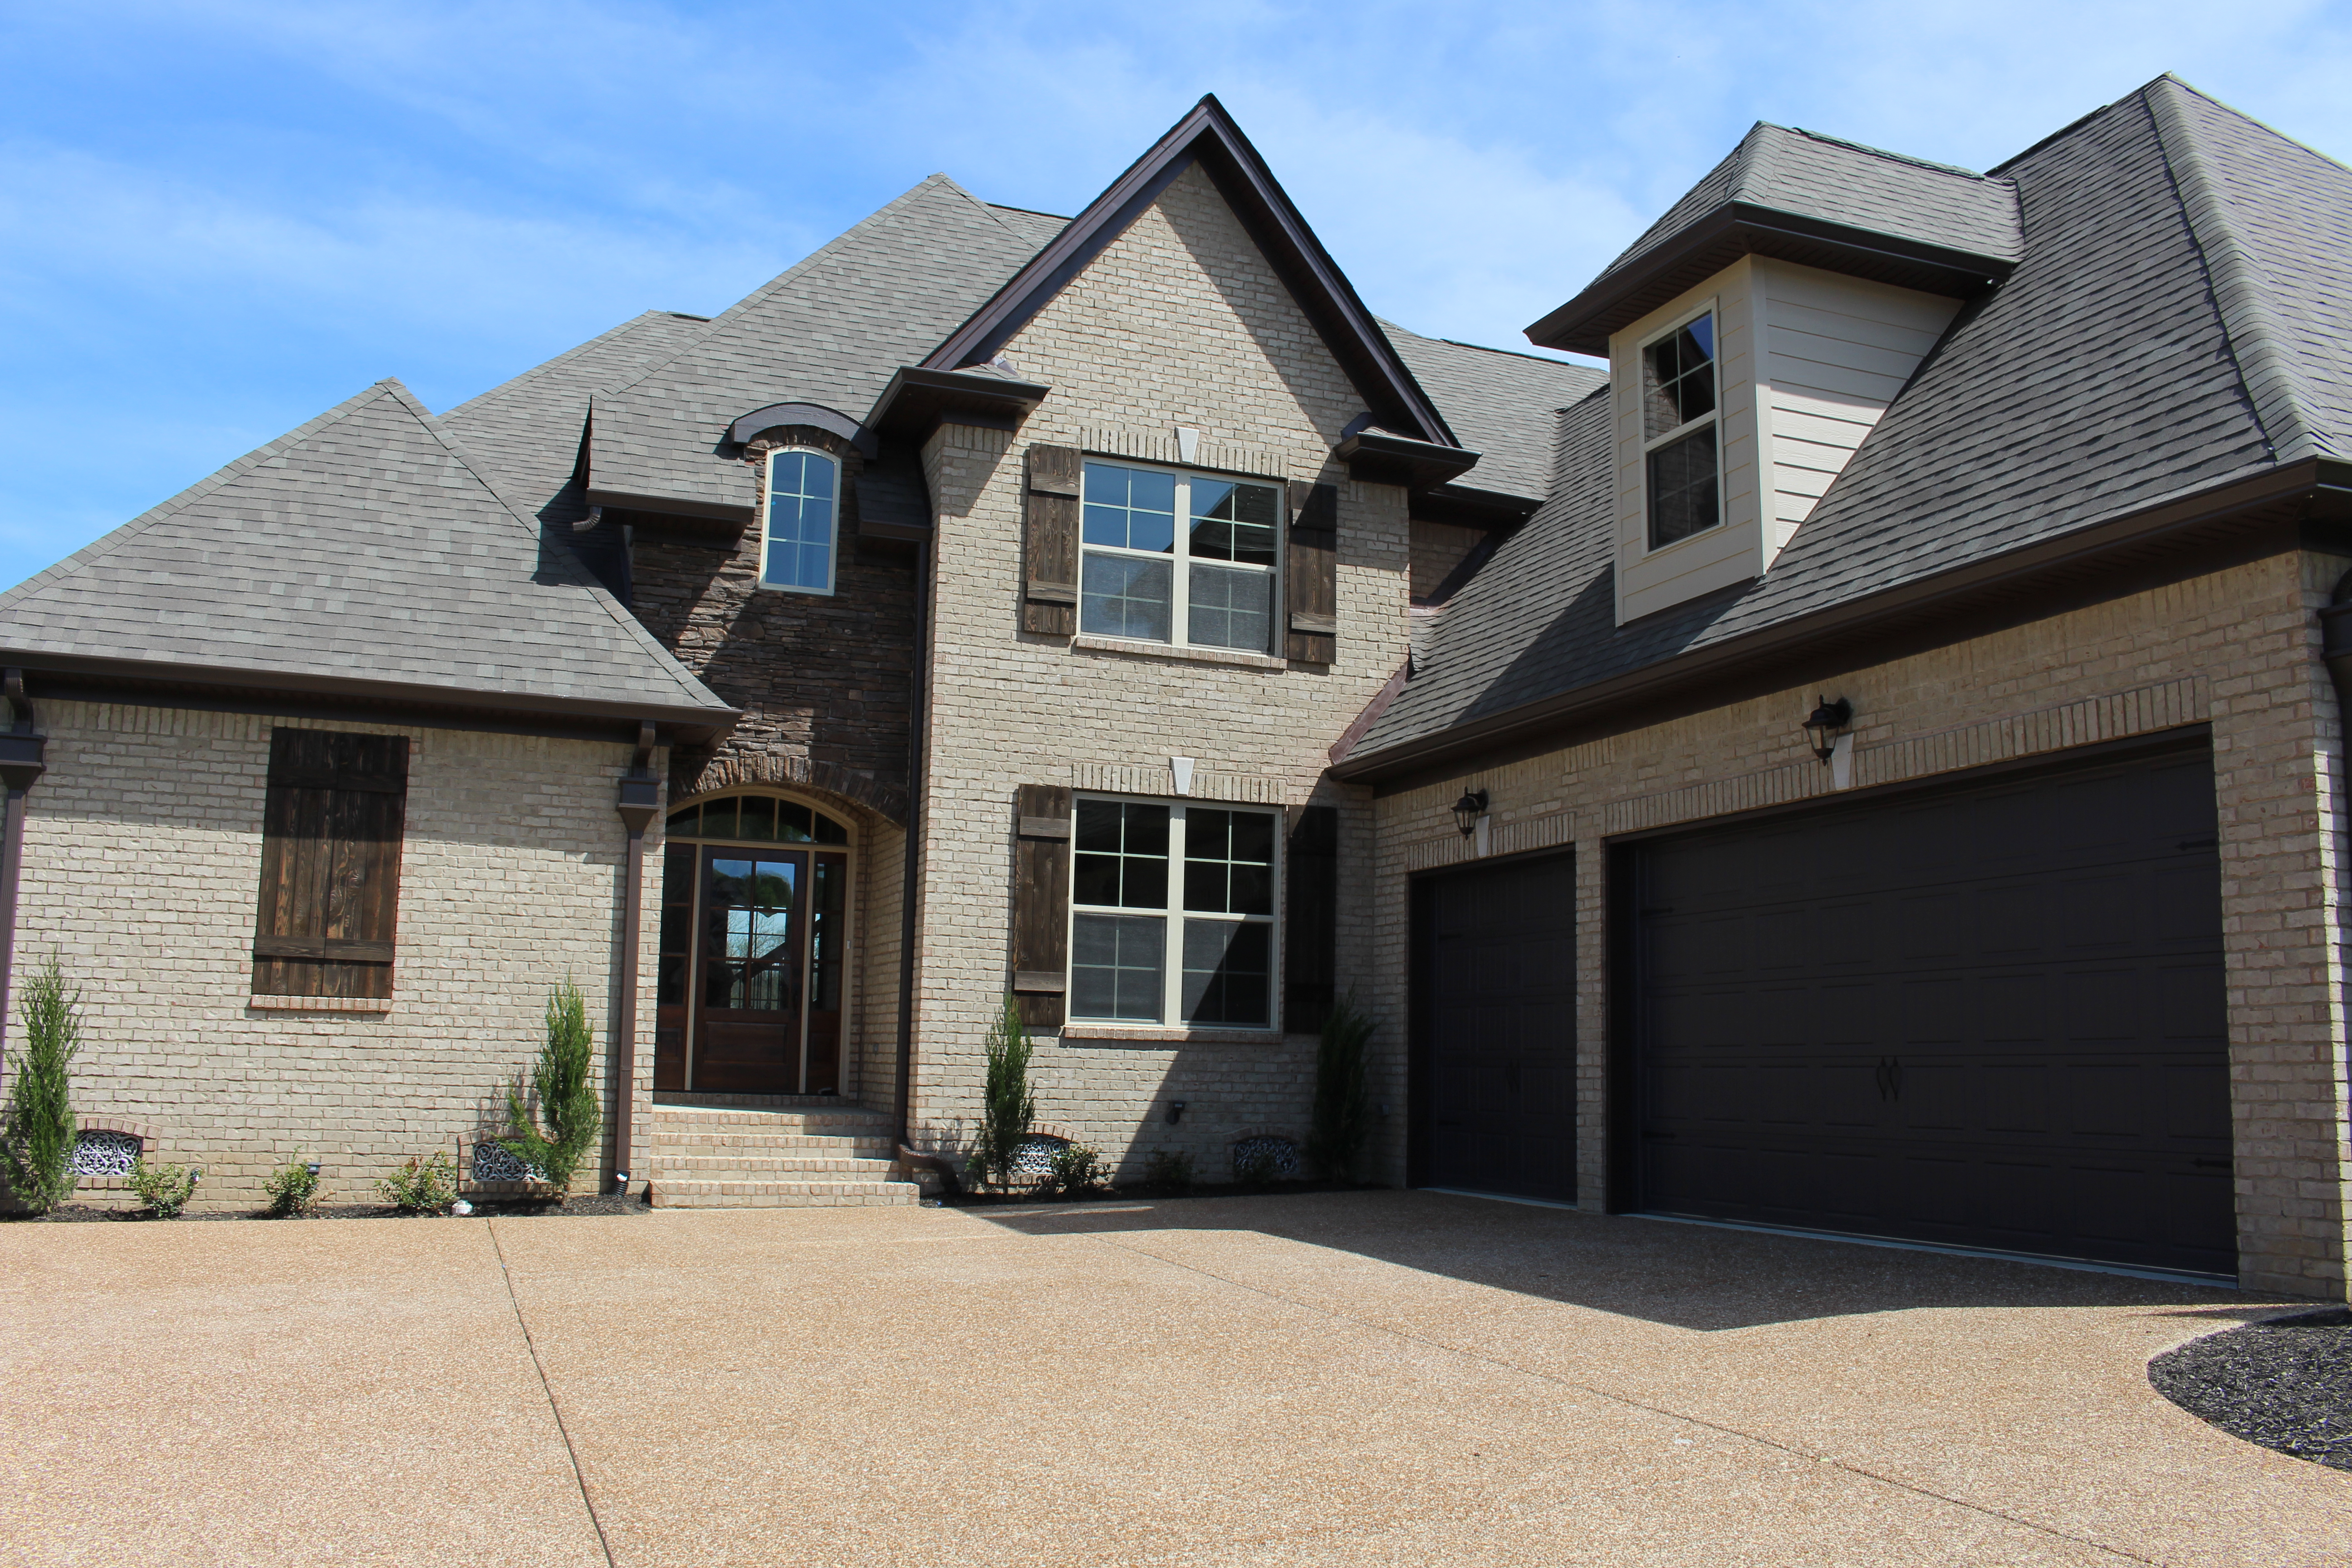 Lot 207 AR driveway front